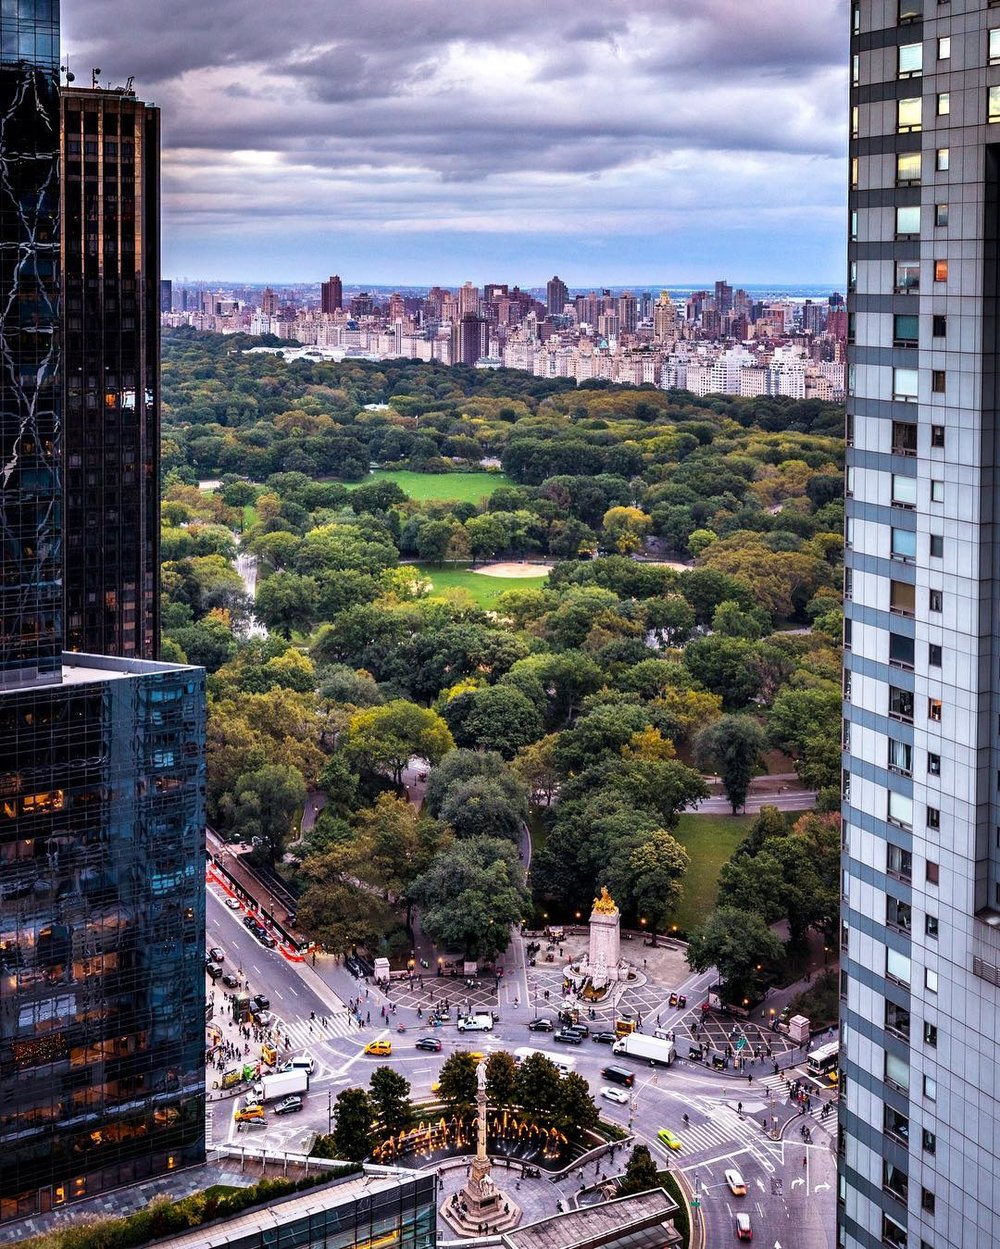 My Central Park NYC #MyCentralPark1680791592_5cd78897-9847-416c-8f97-5237997c9998.jpg